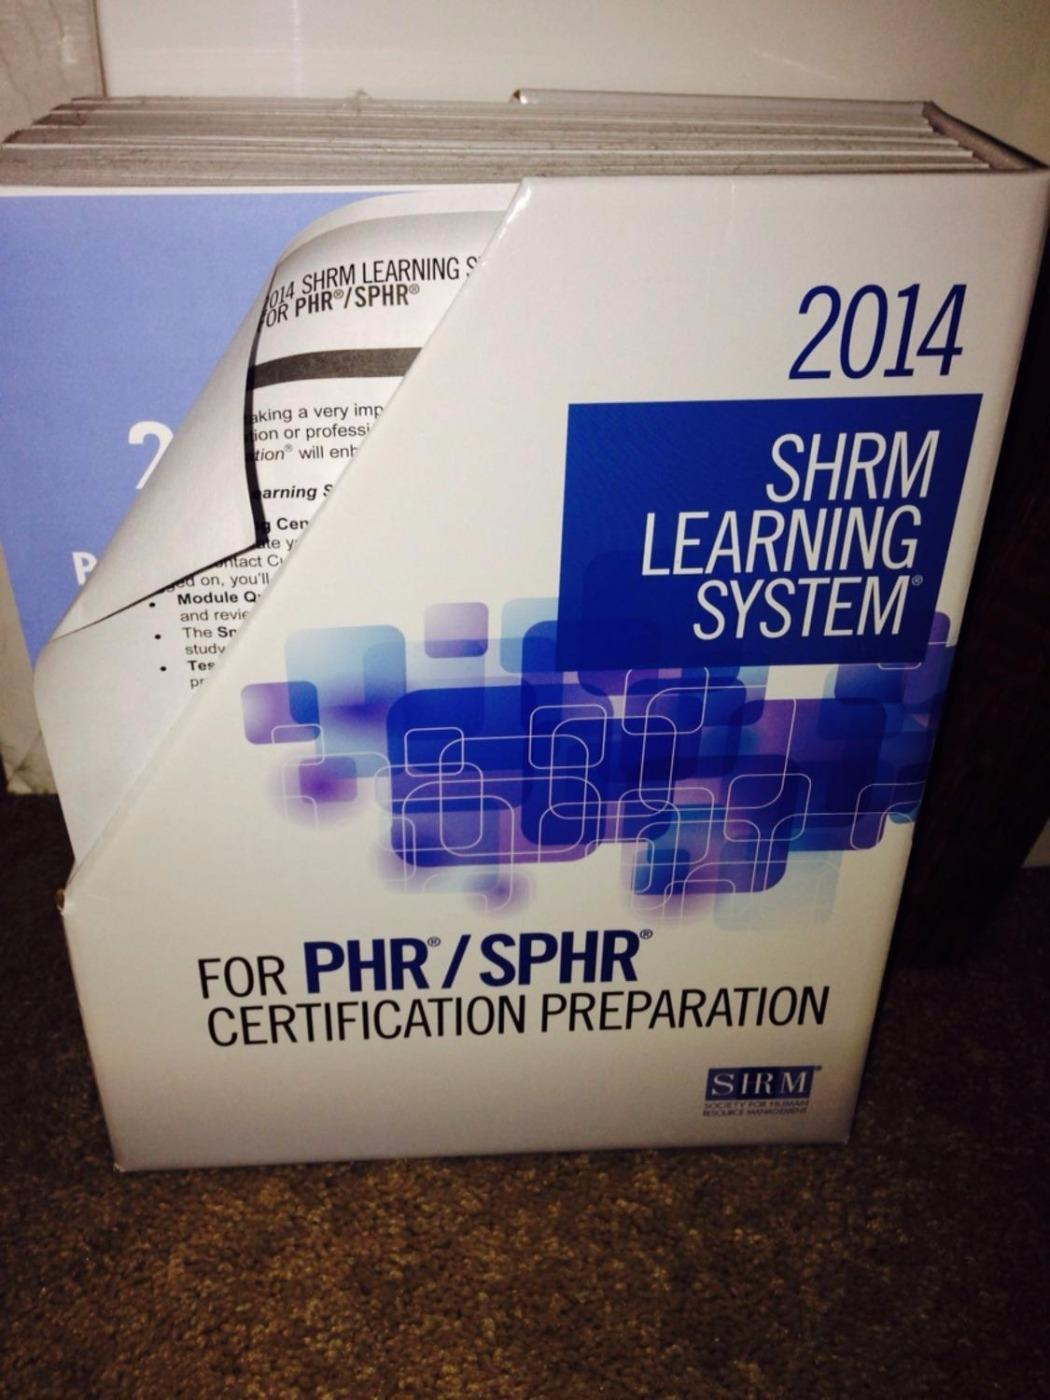 Find more 2014 shrm learning system phrsphr certification find more 2014 shrm learning system phrsphr certification preparation accepts paypal for sale at up to 90 off nashville tn 1betcityfo Gallery